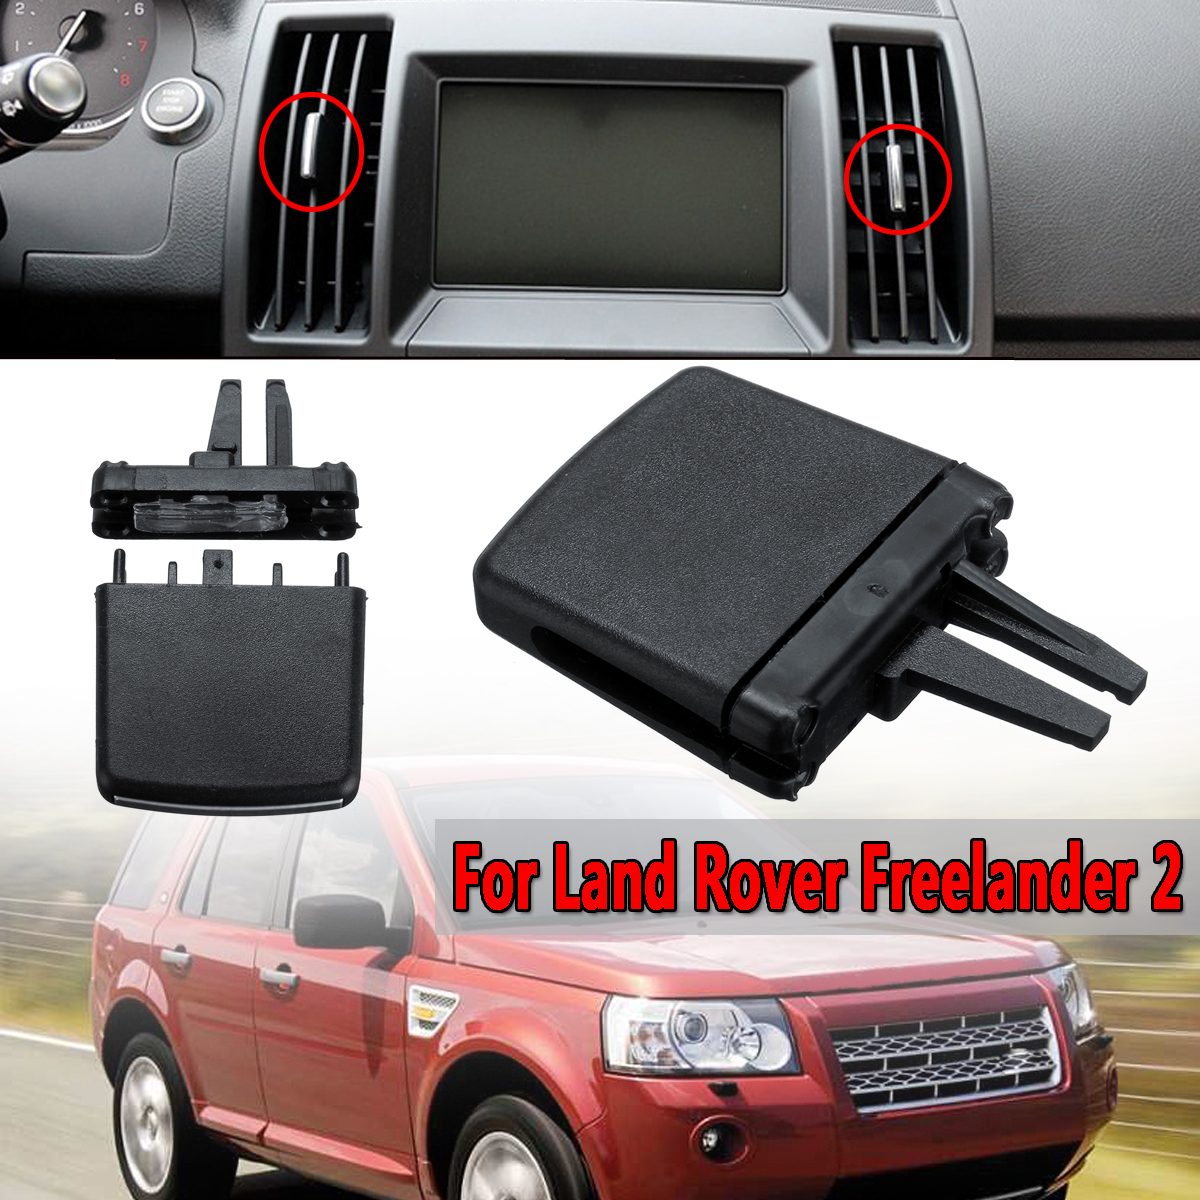 For Land Rover Freelander 2 A//C Front Air Vent Outlet Tab Clip Repair Set Black